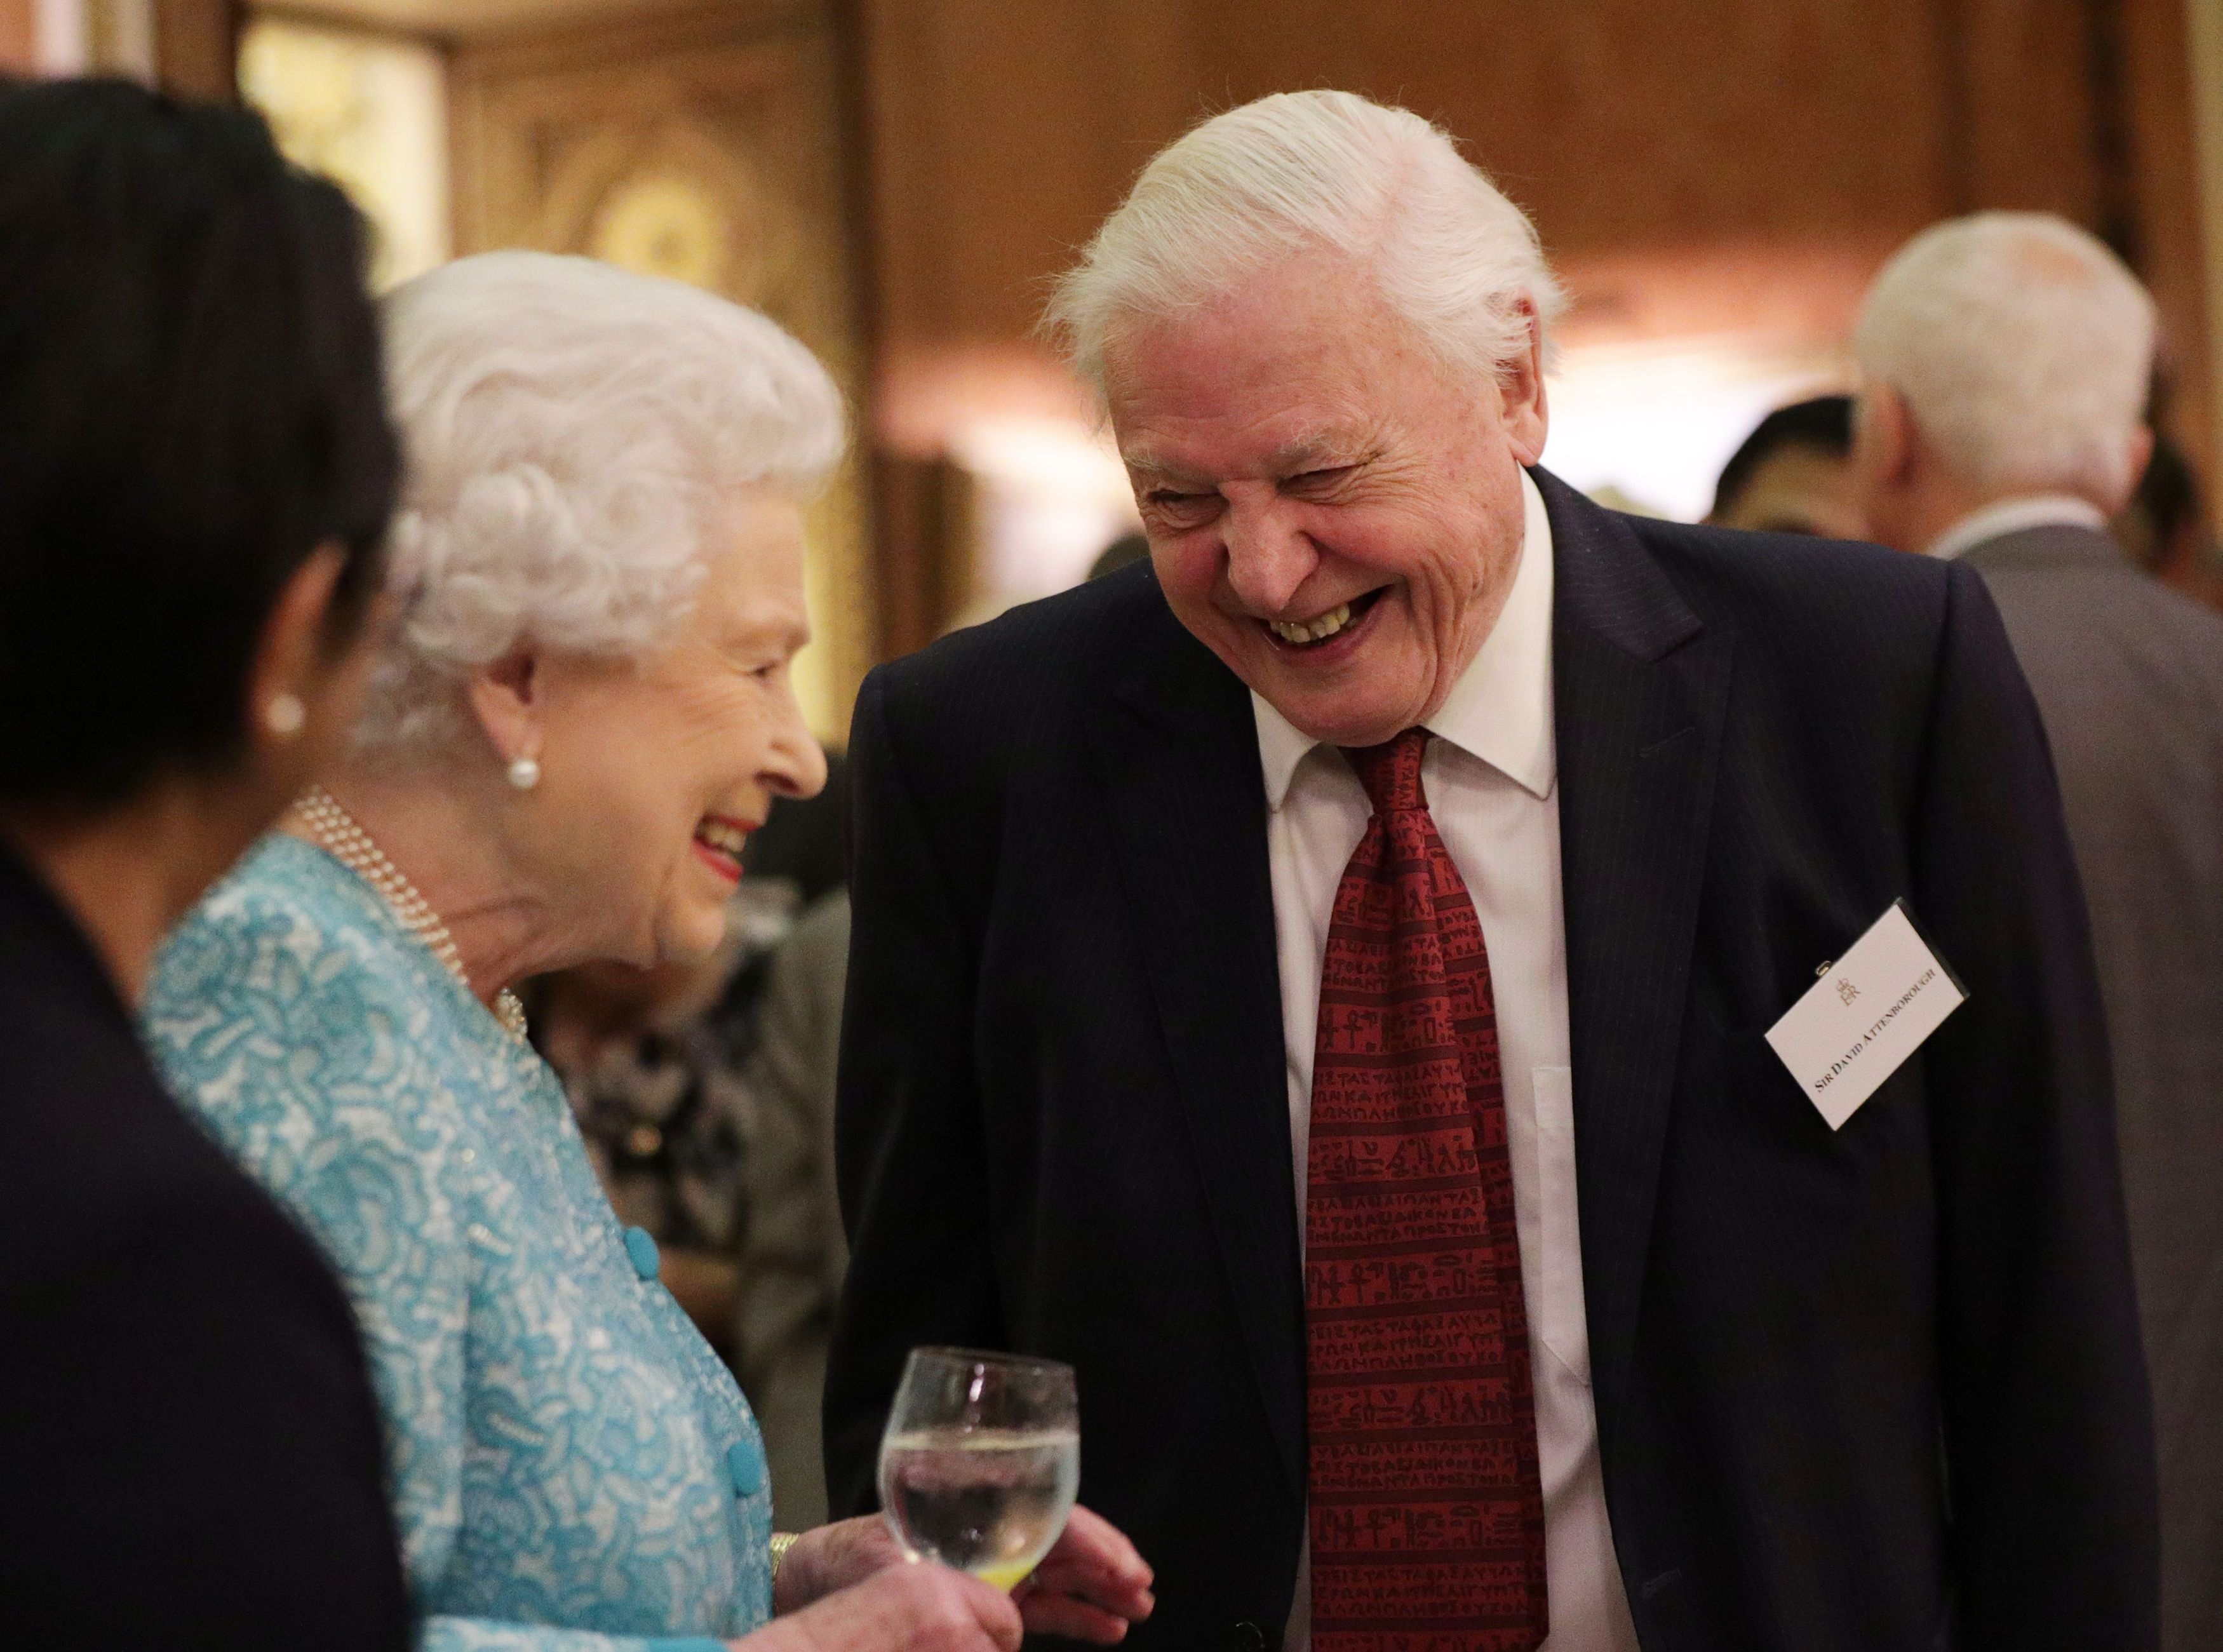 Queen Elizabeth II with Sir David Attenborough during an event at Buckingham Palace, London, to showcase forestry projects that have been dedicated to the new conservation initiative - The Queen's Commonwealth Canopy (QCC).